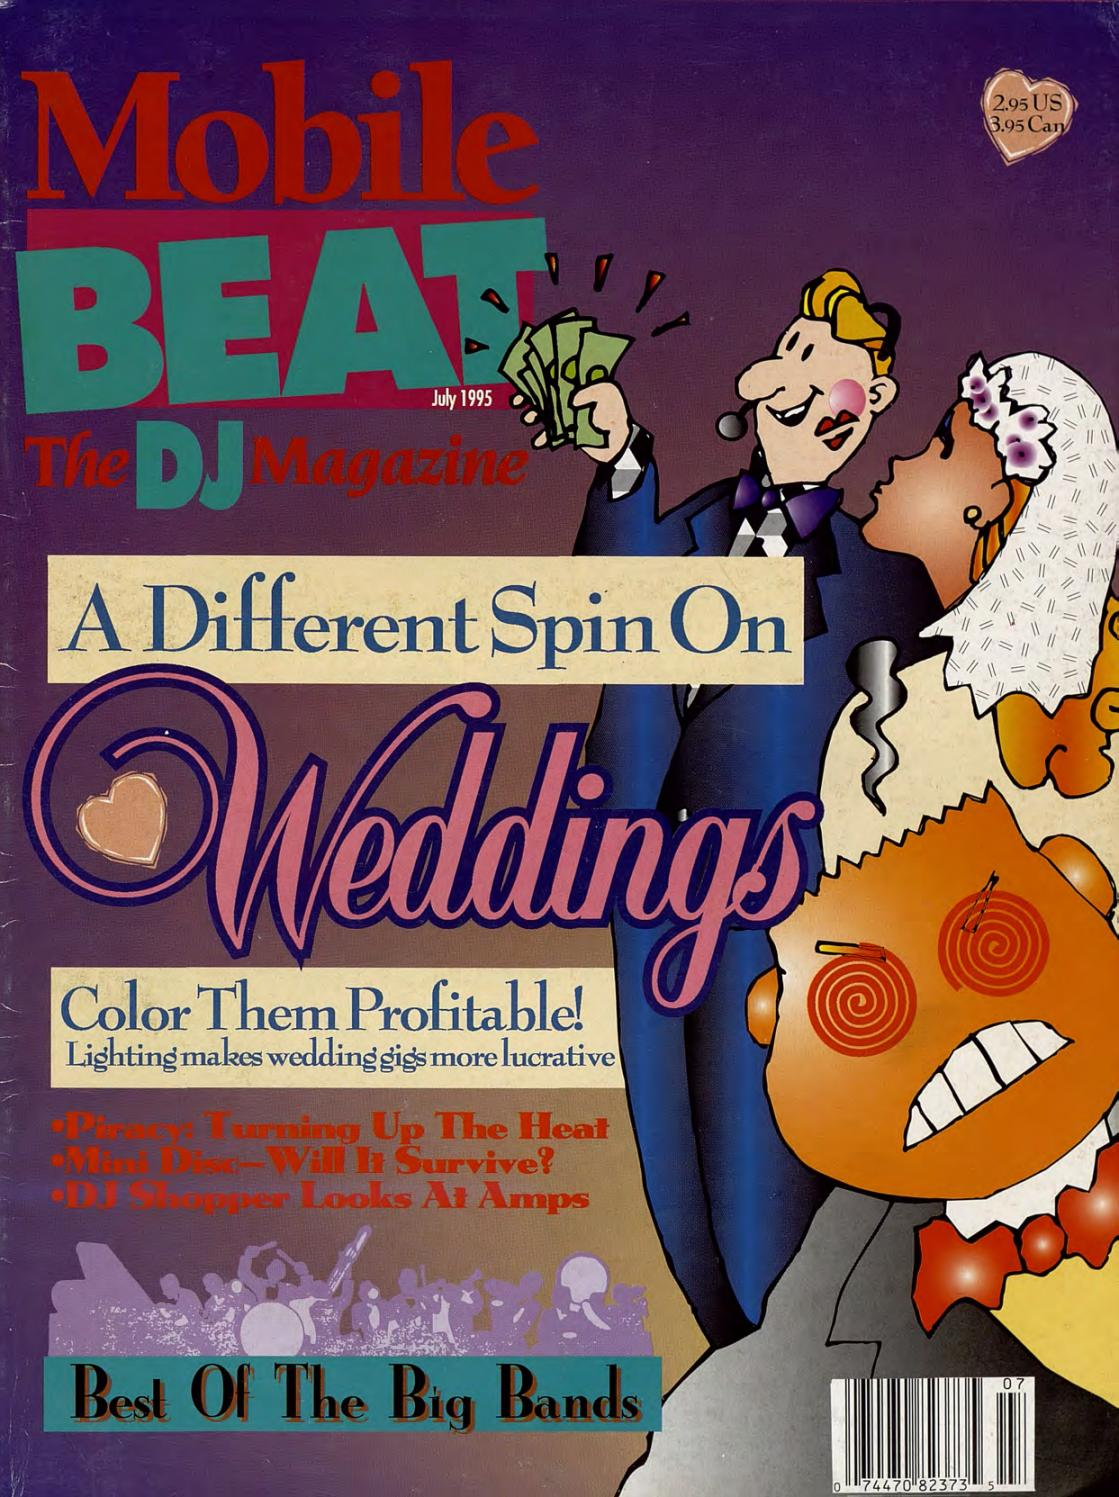 47936954a0e0 Issue 026 - July 1995 - A Different Spin On Weddings by Mobile Beat ...